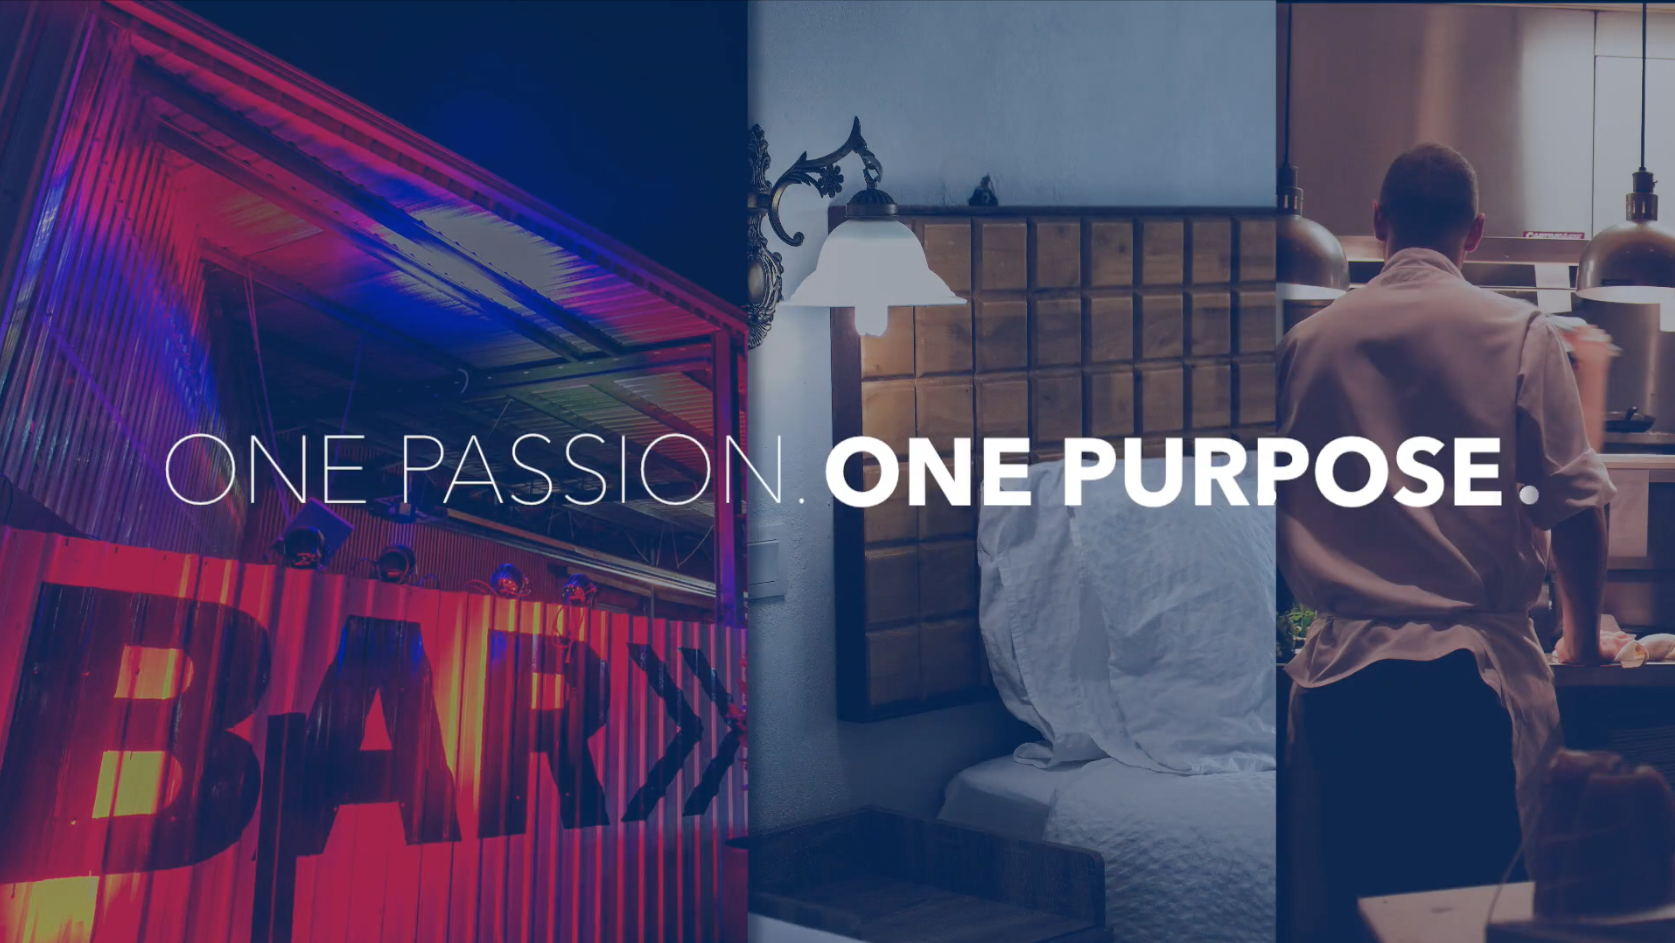 It's a simple idea, but a powerful one. The THA represents an industry which is the vanguard of local tourism, the first port of call and the custodian of memories. In 'One Passion: One Purpose' we codified that in a rallying cry.